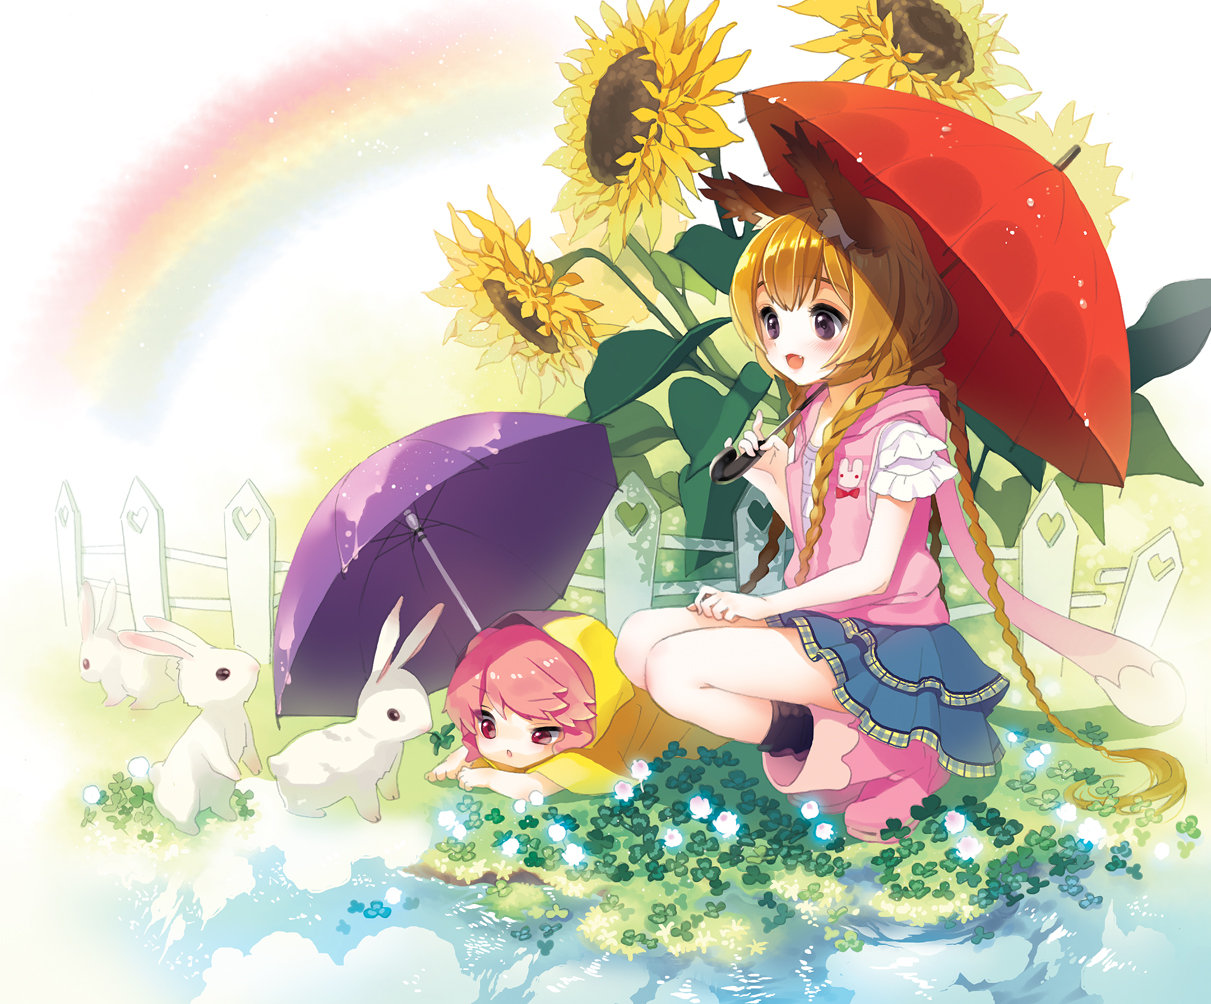 2girls animal animal_ears braids brown_hair cherrypin flowers loli long_hair original pink_eyes pink_hair purple_eyes rabbit rainbow sunflower umbrella